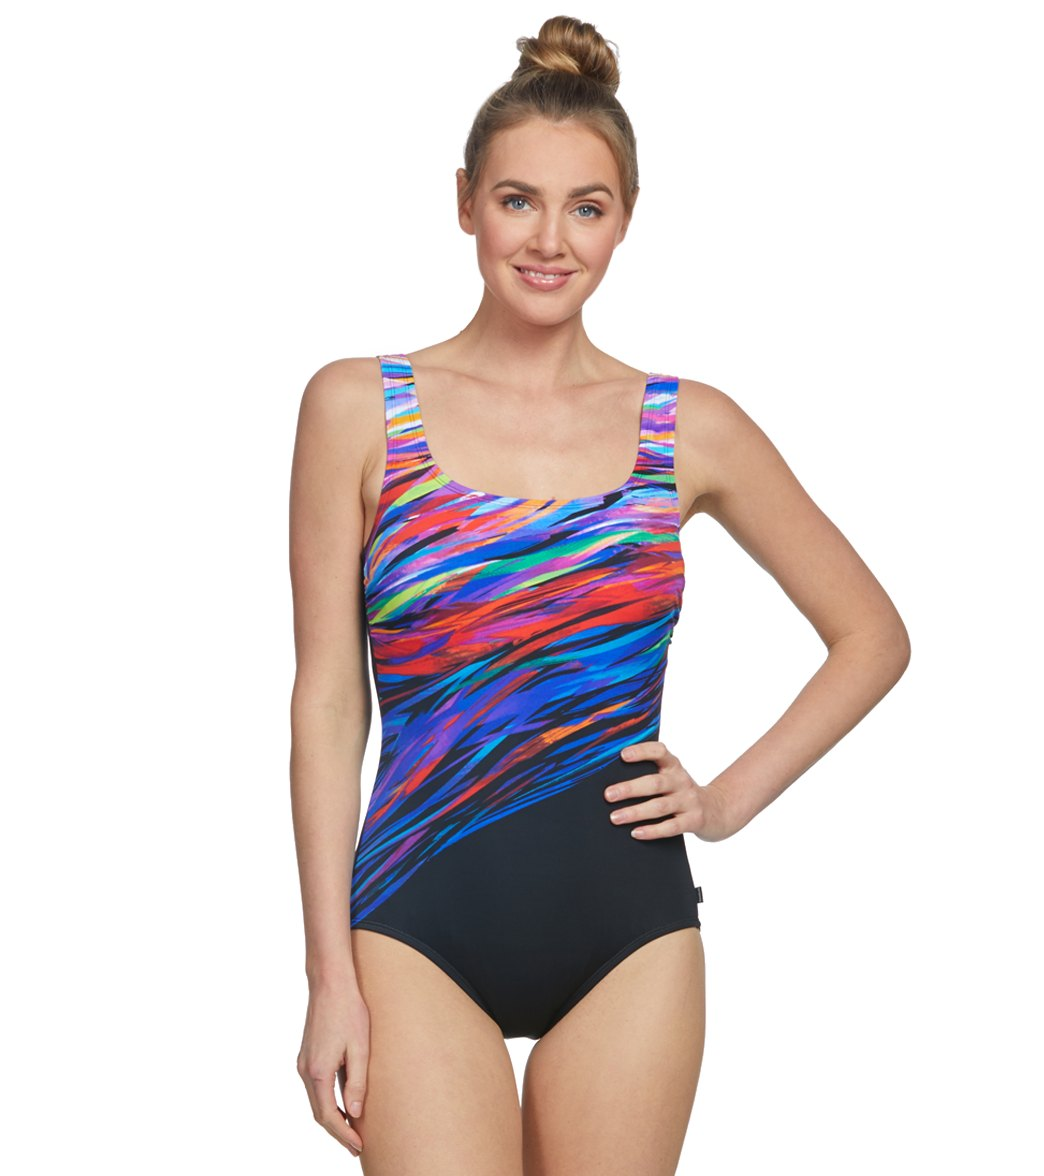 4f4c20d2bbb34 Reebok Northern Northern Lights Show Scoop Neck Chlorine Resistant One  Piece Swimsuit at SwimOutlet.com - Free Shipping